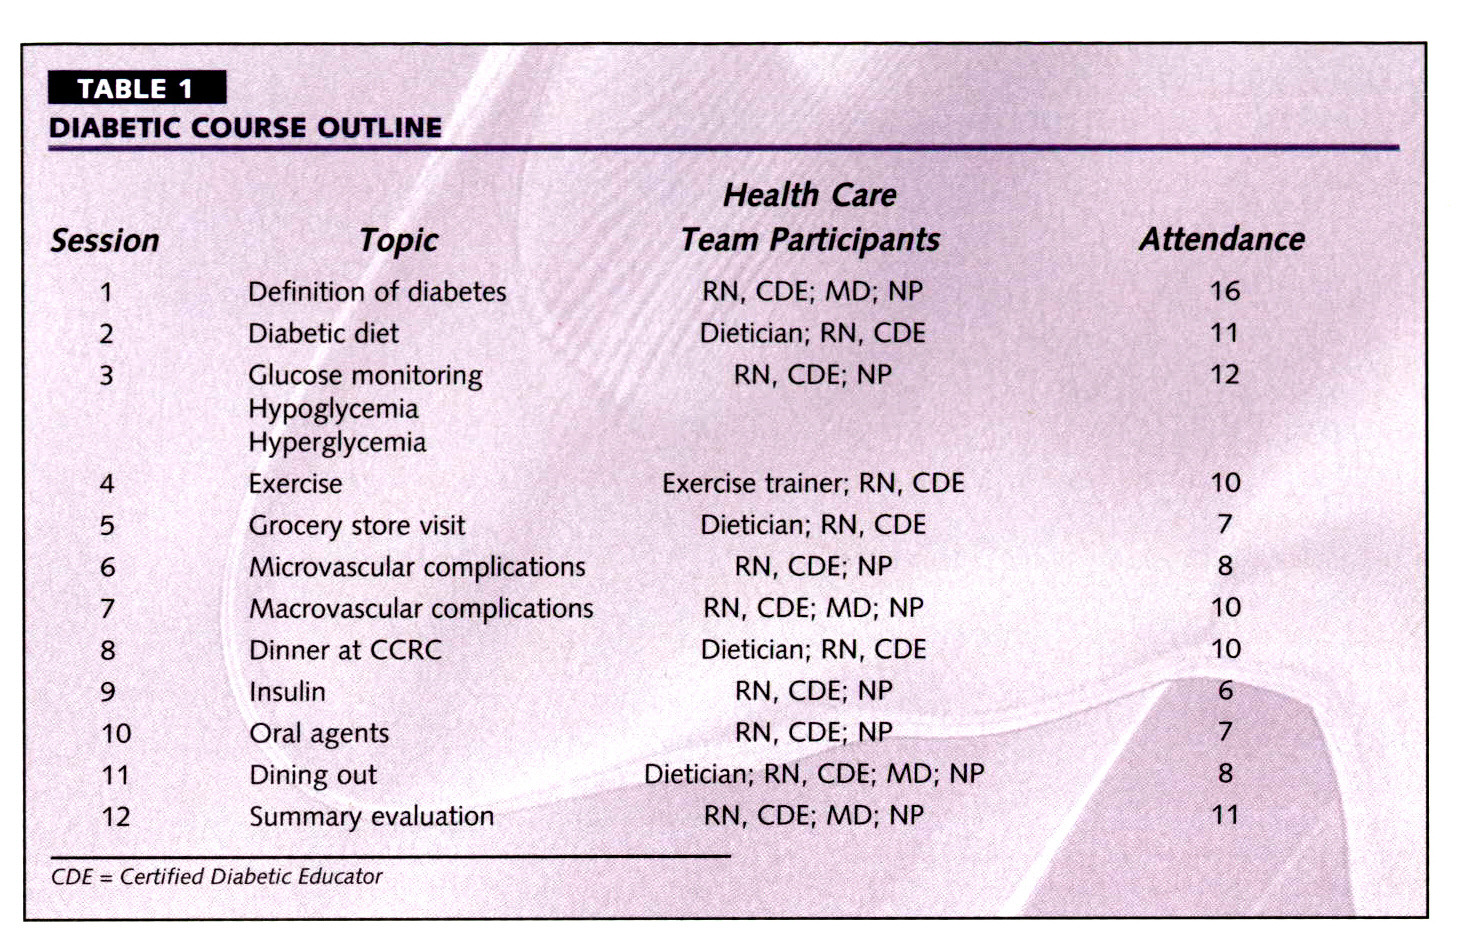 TABLE 1DIABETIC COURSE OUTLINE